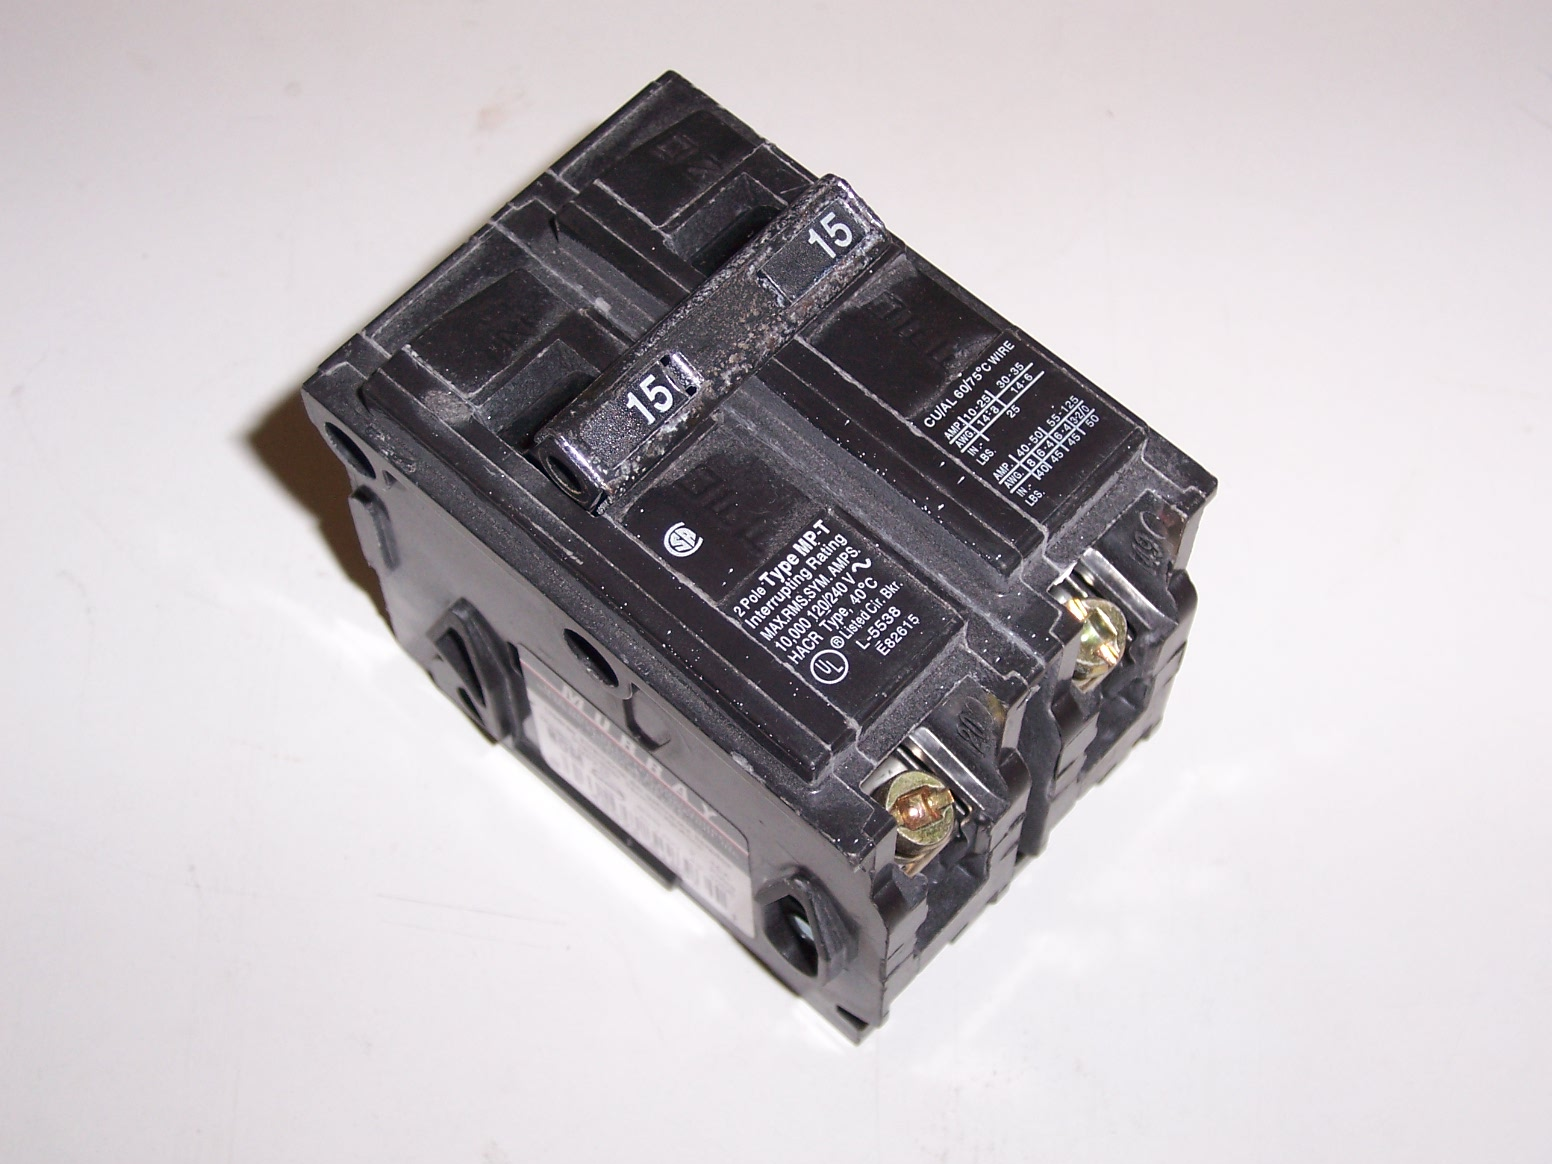 MURRAY MP215KH 15Amp, 2 Pole, 120/240 Volt, Plug-In Circuit Breaker